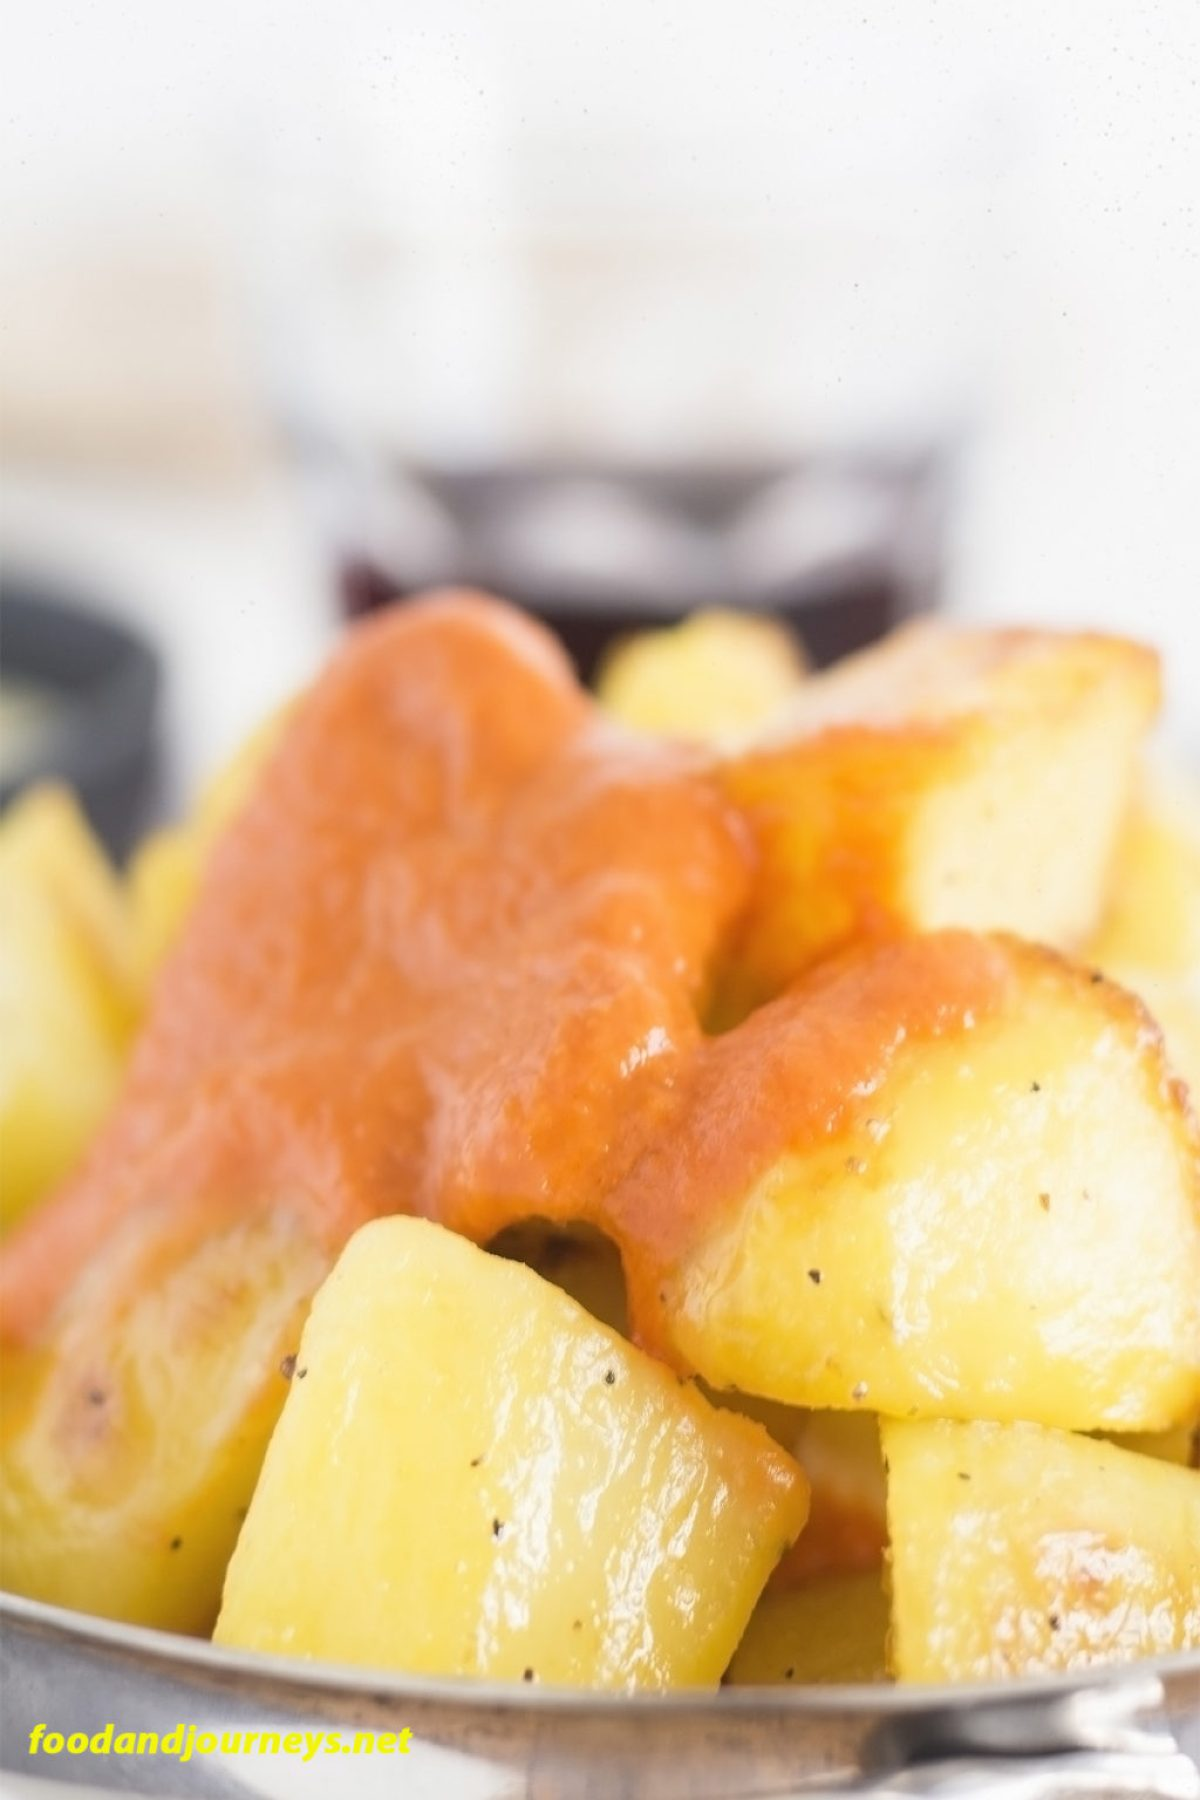 Oven Roasted Patatas Bravas pic1|foodandjourneys.net